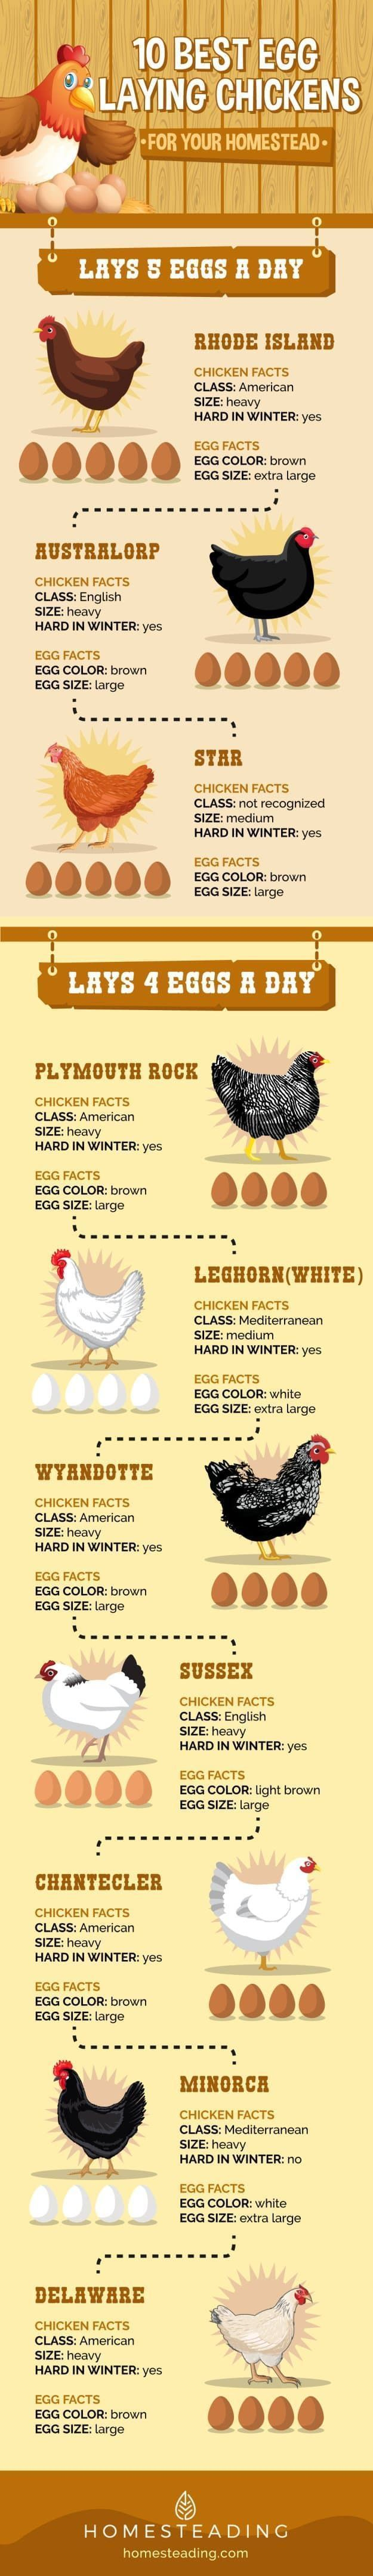 If you plan to raise chicken for eggs, this list will help you find out the best egg laying chickens to raise in your homestead. #RaisingChickens